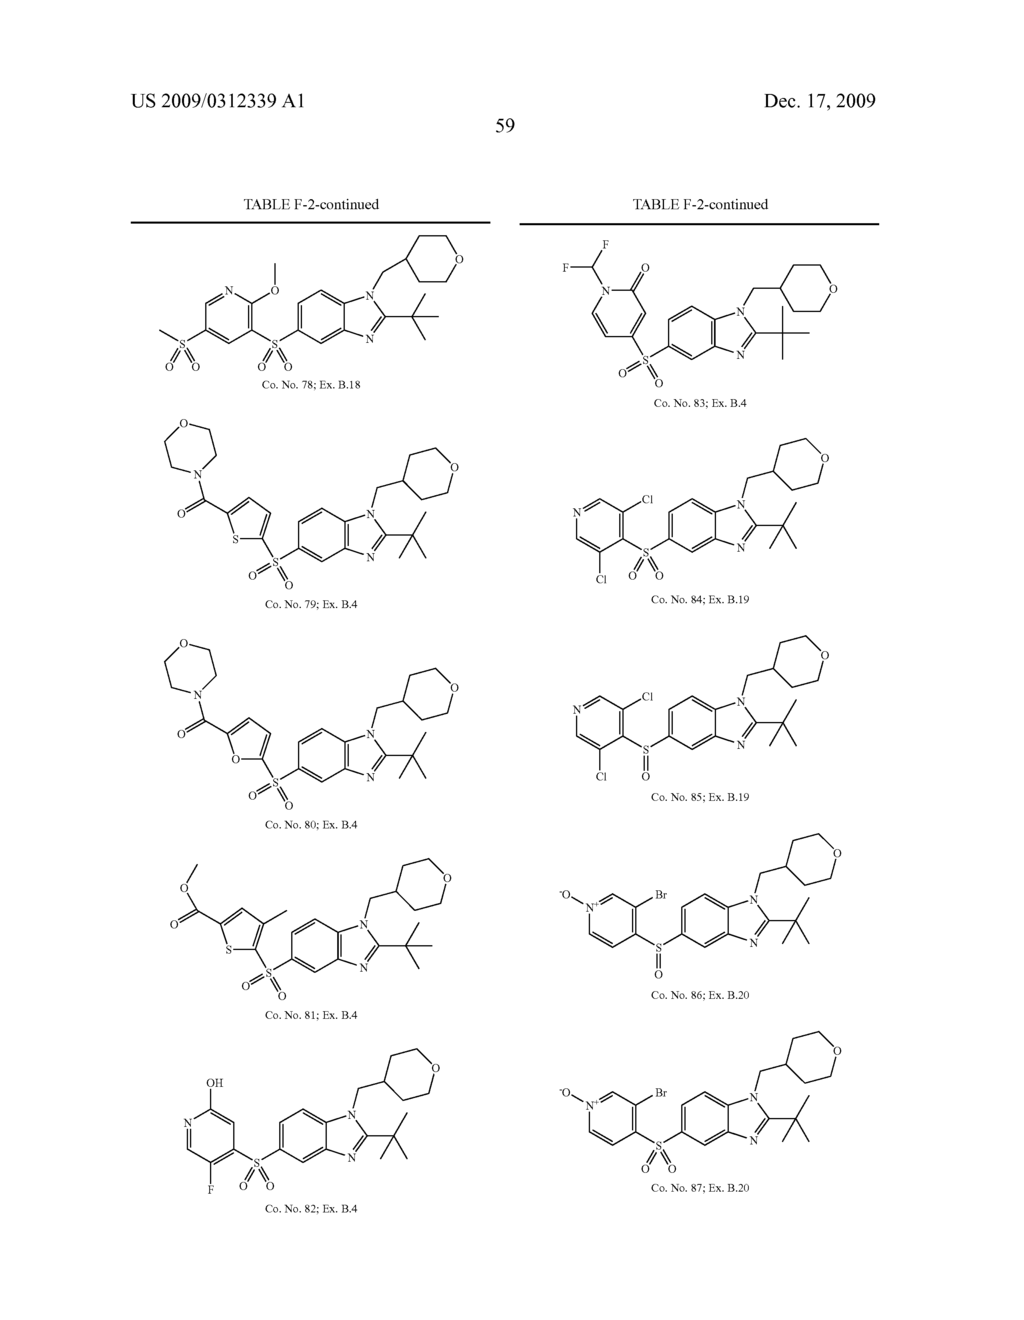 BENZIMIDAZOLE CANNABINOID AGONISTS BEARING A SUBSTITUTED HETEROCYCLIC GROUP - diagram, schematic, and image 60